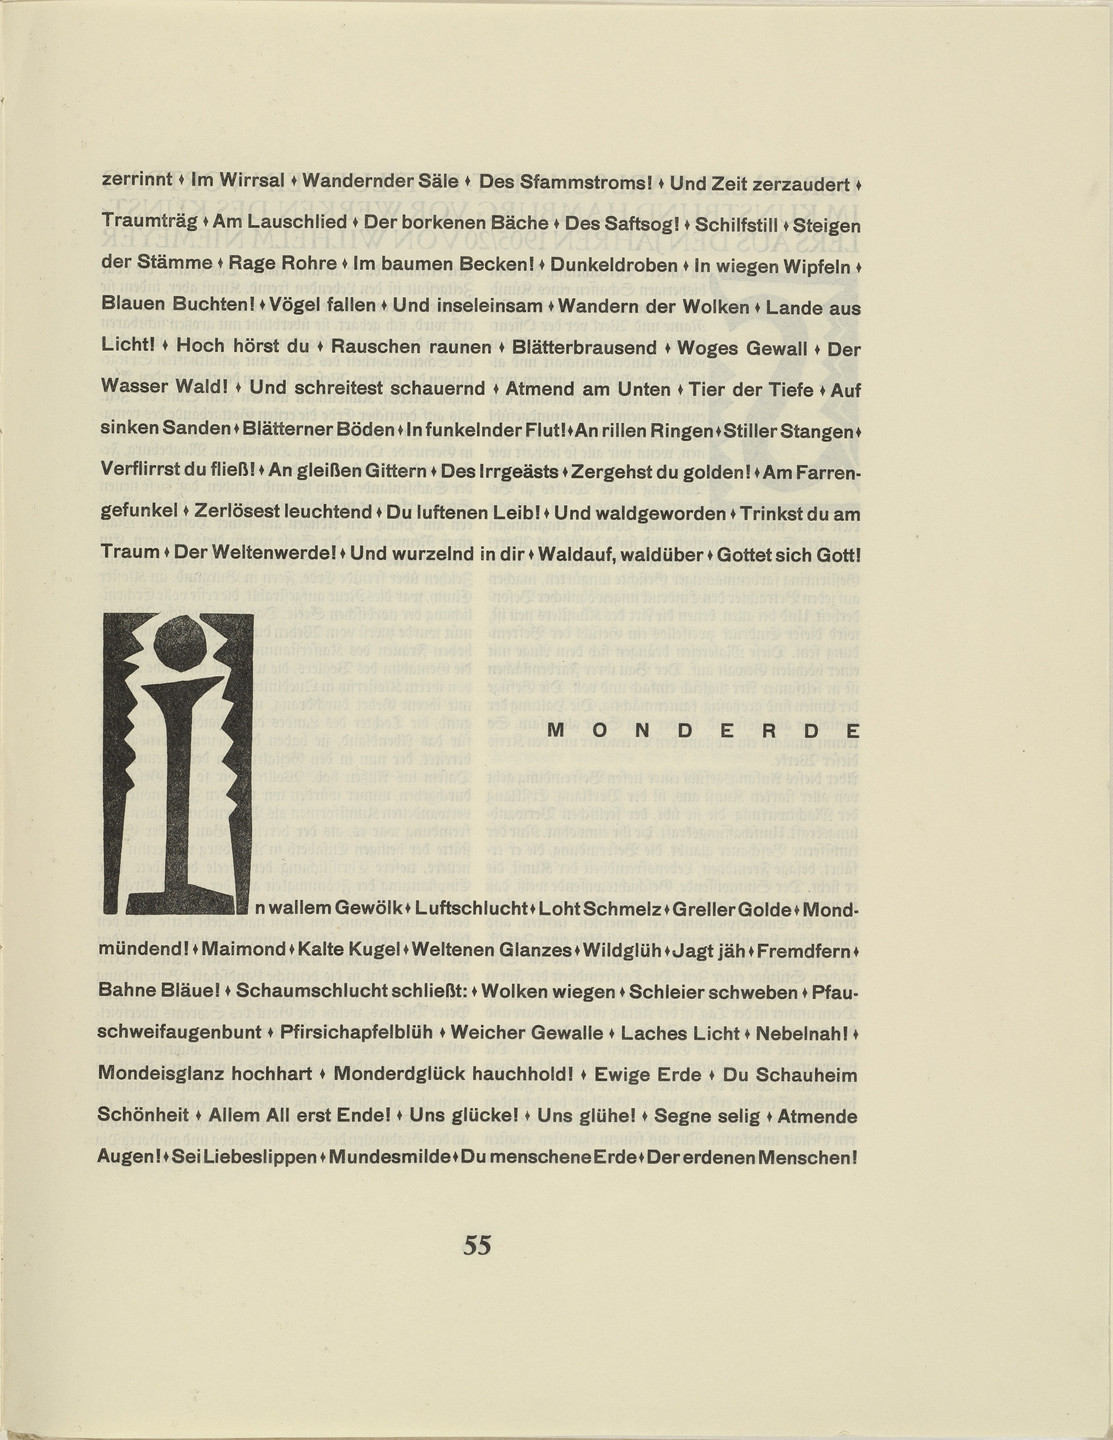 Karl Schmidt-Rottluff. Ornamental initial 'I' from the periodical Kündung, vol. 1, no. 4, 5, 6 (April, May, June 1921). 1921 (executed 1920)